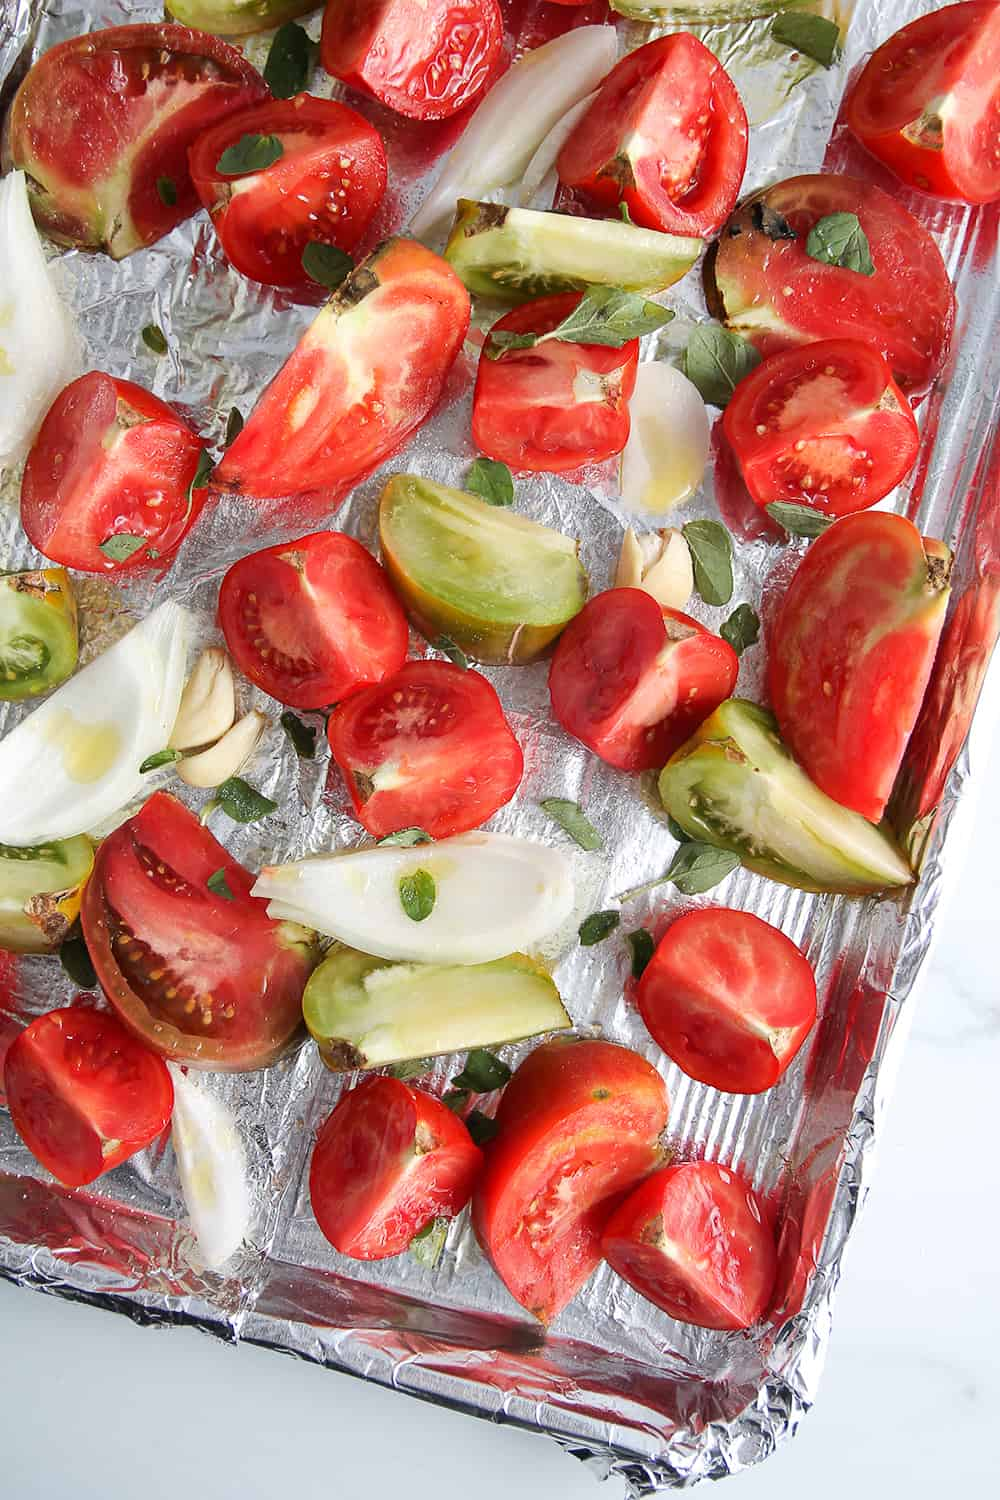 Fresh tomatoes and onions on a foil-lined sheet pan, ready to roast